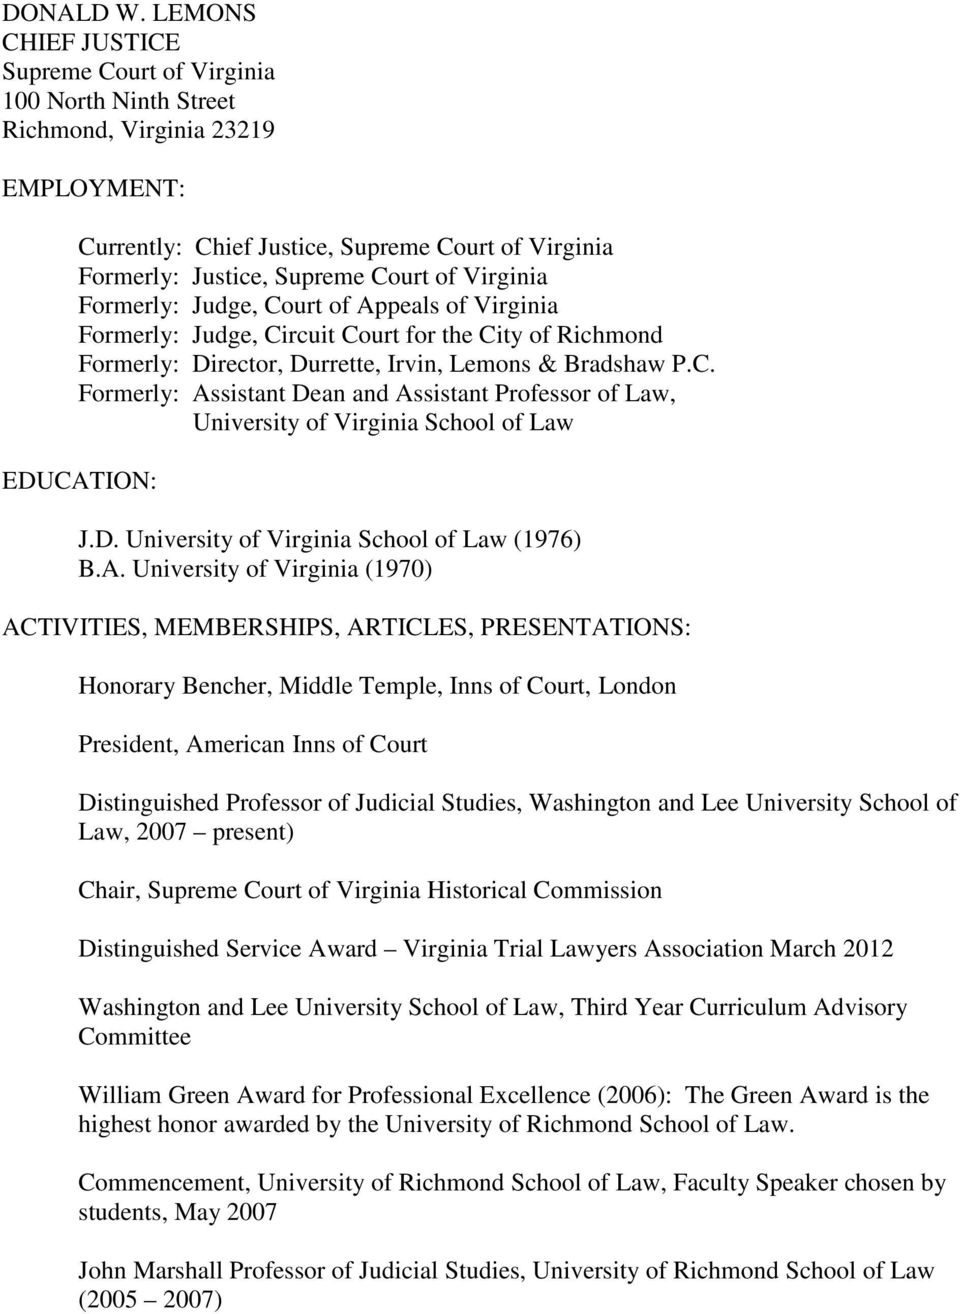 Virginia Formerly: Judge, Court of Appeals of Virginia Formerly: Judge, Circuit Court for the City of Richmond Formerly: Director, Durrette, Irvin, Lemons & Bradshaw P.C. Formerly: Assistant Dean and Assistant Professor of Law, University of Virginia School of Law EDUCATION: J.